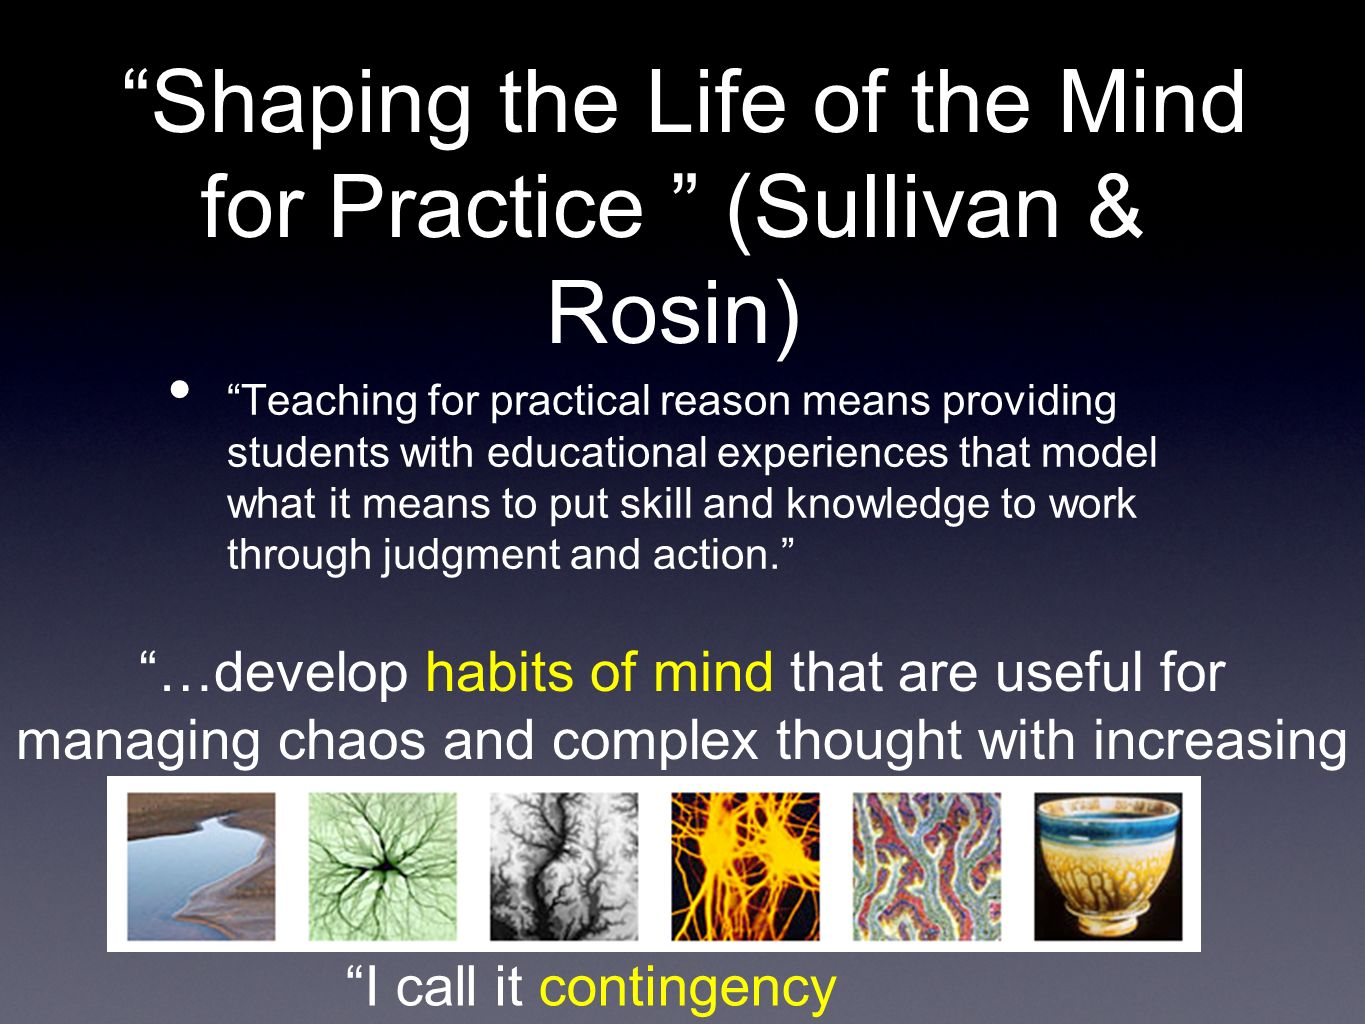 Shaping the Life of the Mind for Practice (Sullivan & Rosin) Teaching for practical reason means providing students with educational experiences that model what it means to put skill and knowledge to work through judgment and action.